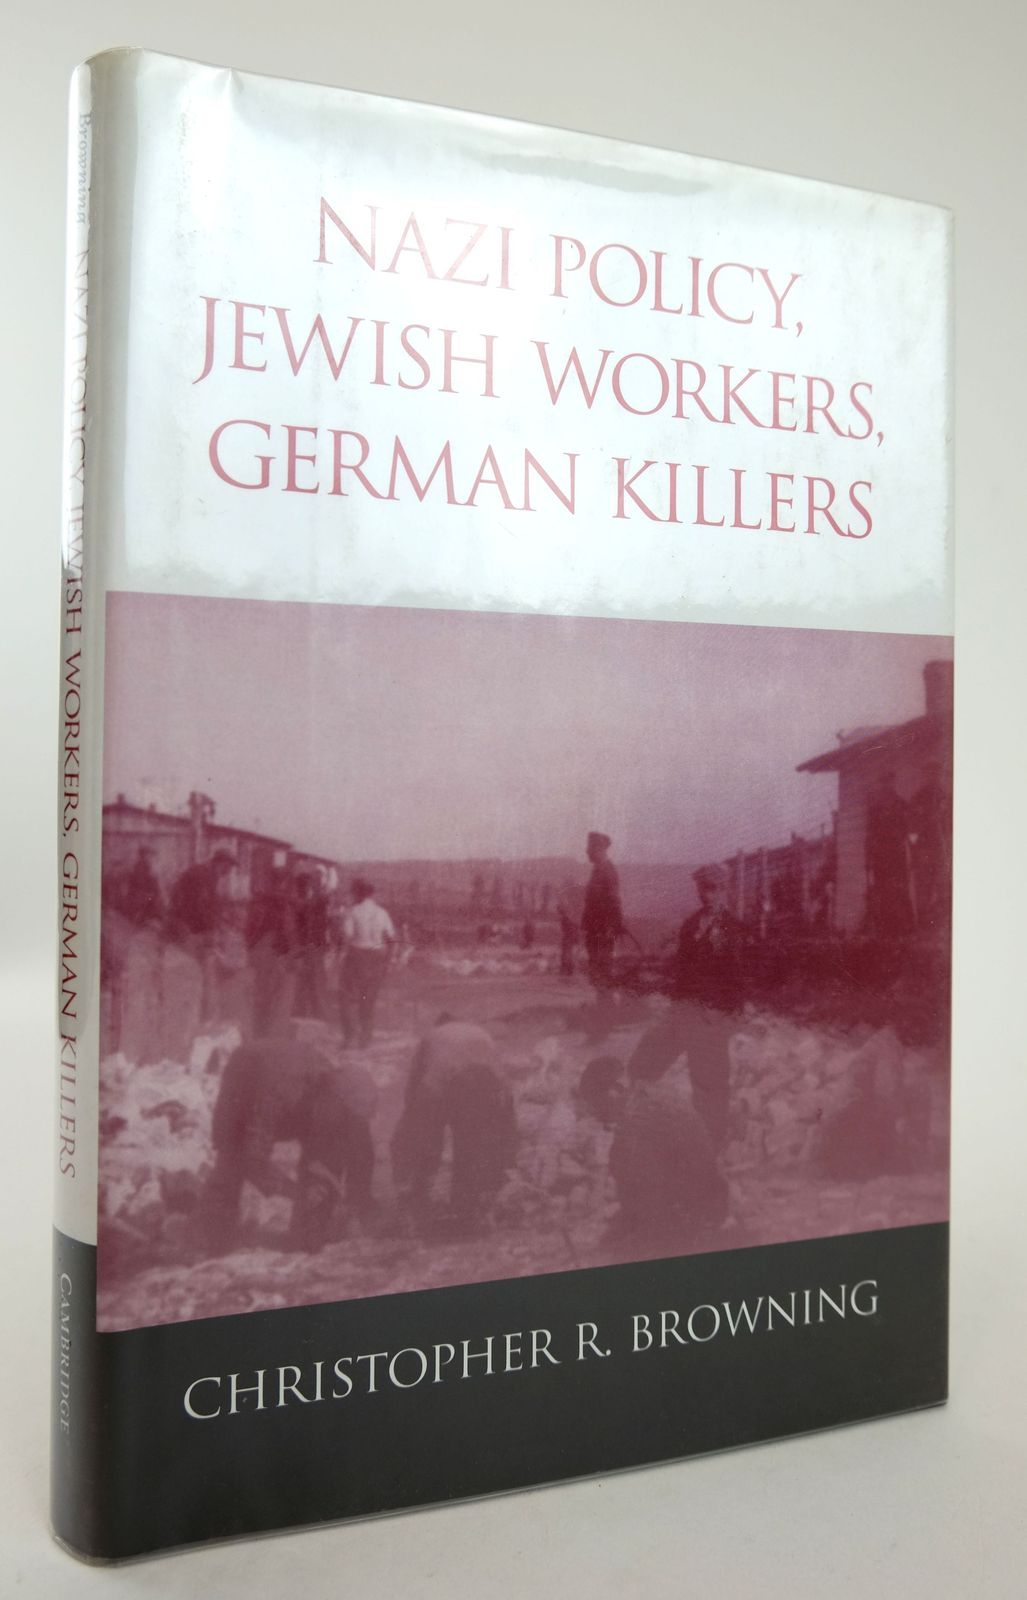 Photo of NAZI POLICY, JEWISH WORKERS, GERMAN KILLERS- Stock Number: 1818903